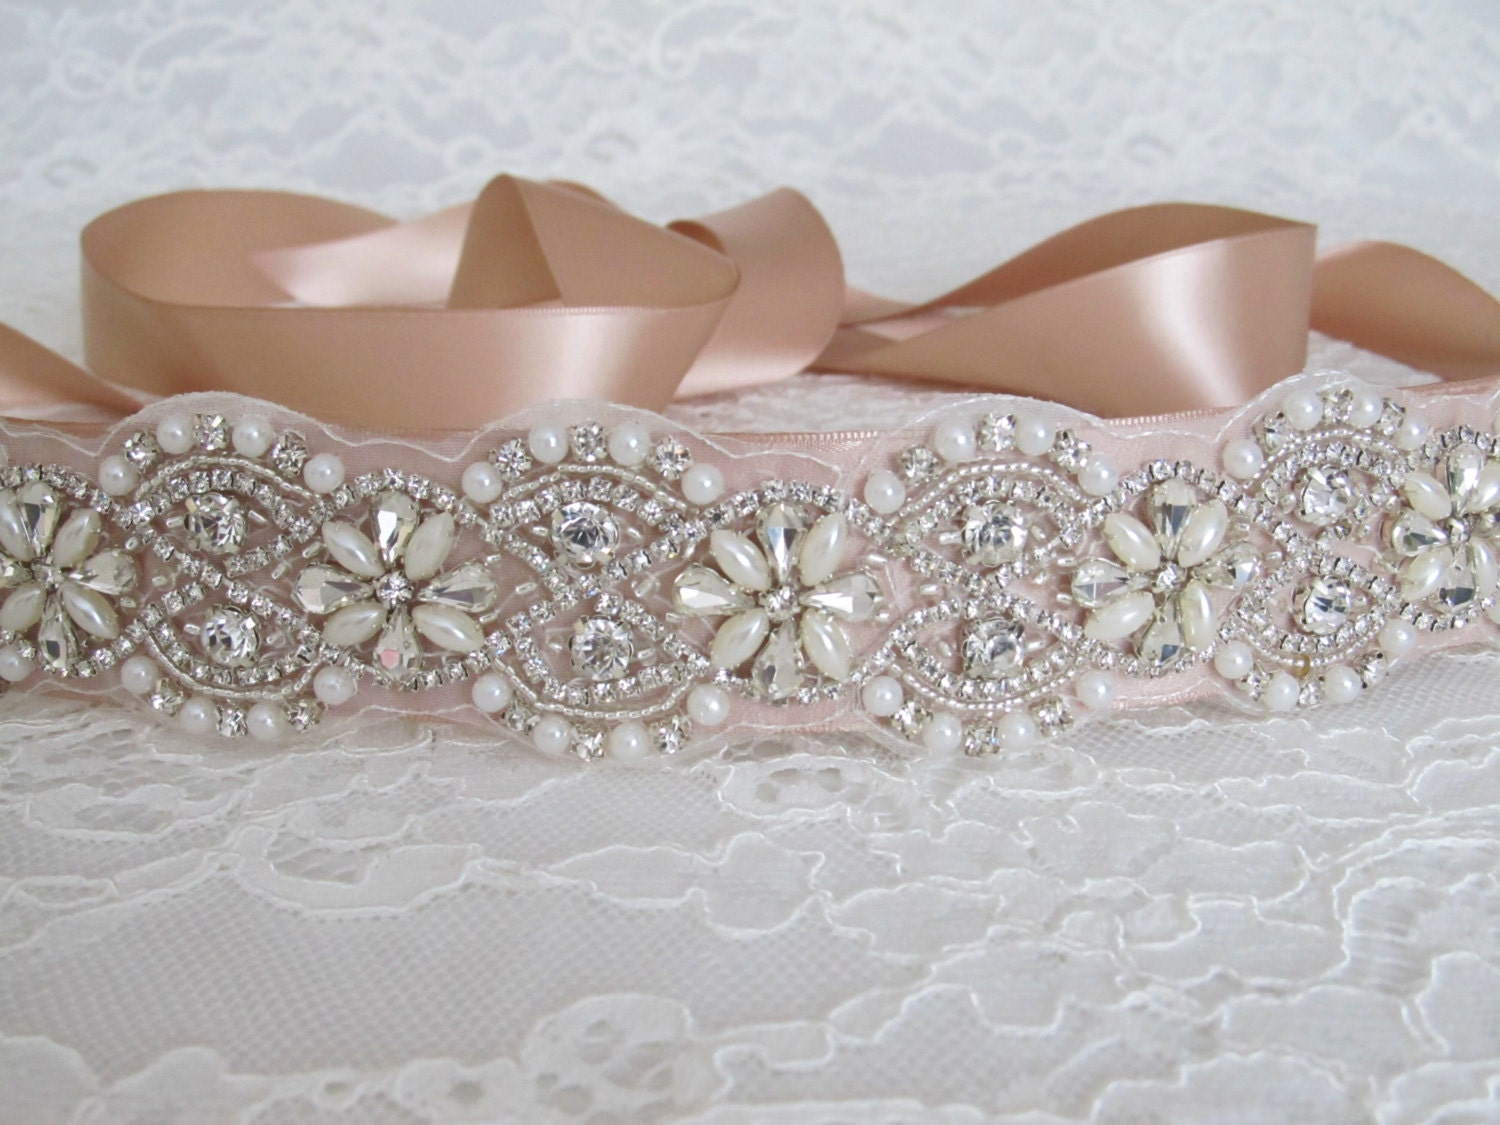 Pearl Crystal Rhinestone Bridal Sash,Bridal sash,Wedding sash,Bridal Accessories,Wedding Accessories,Bridal Belt,Style #3